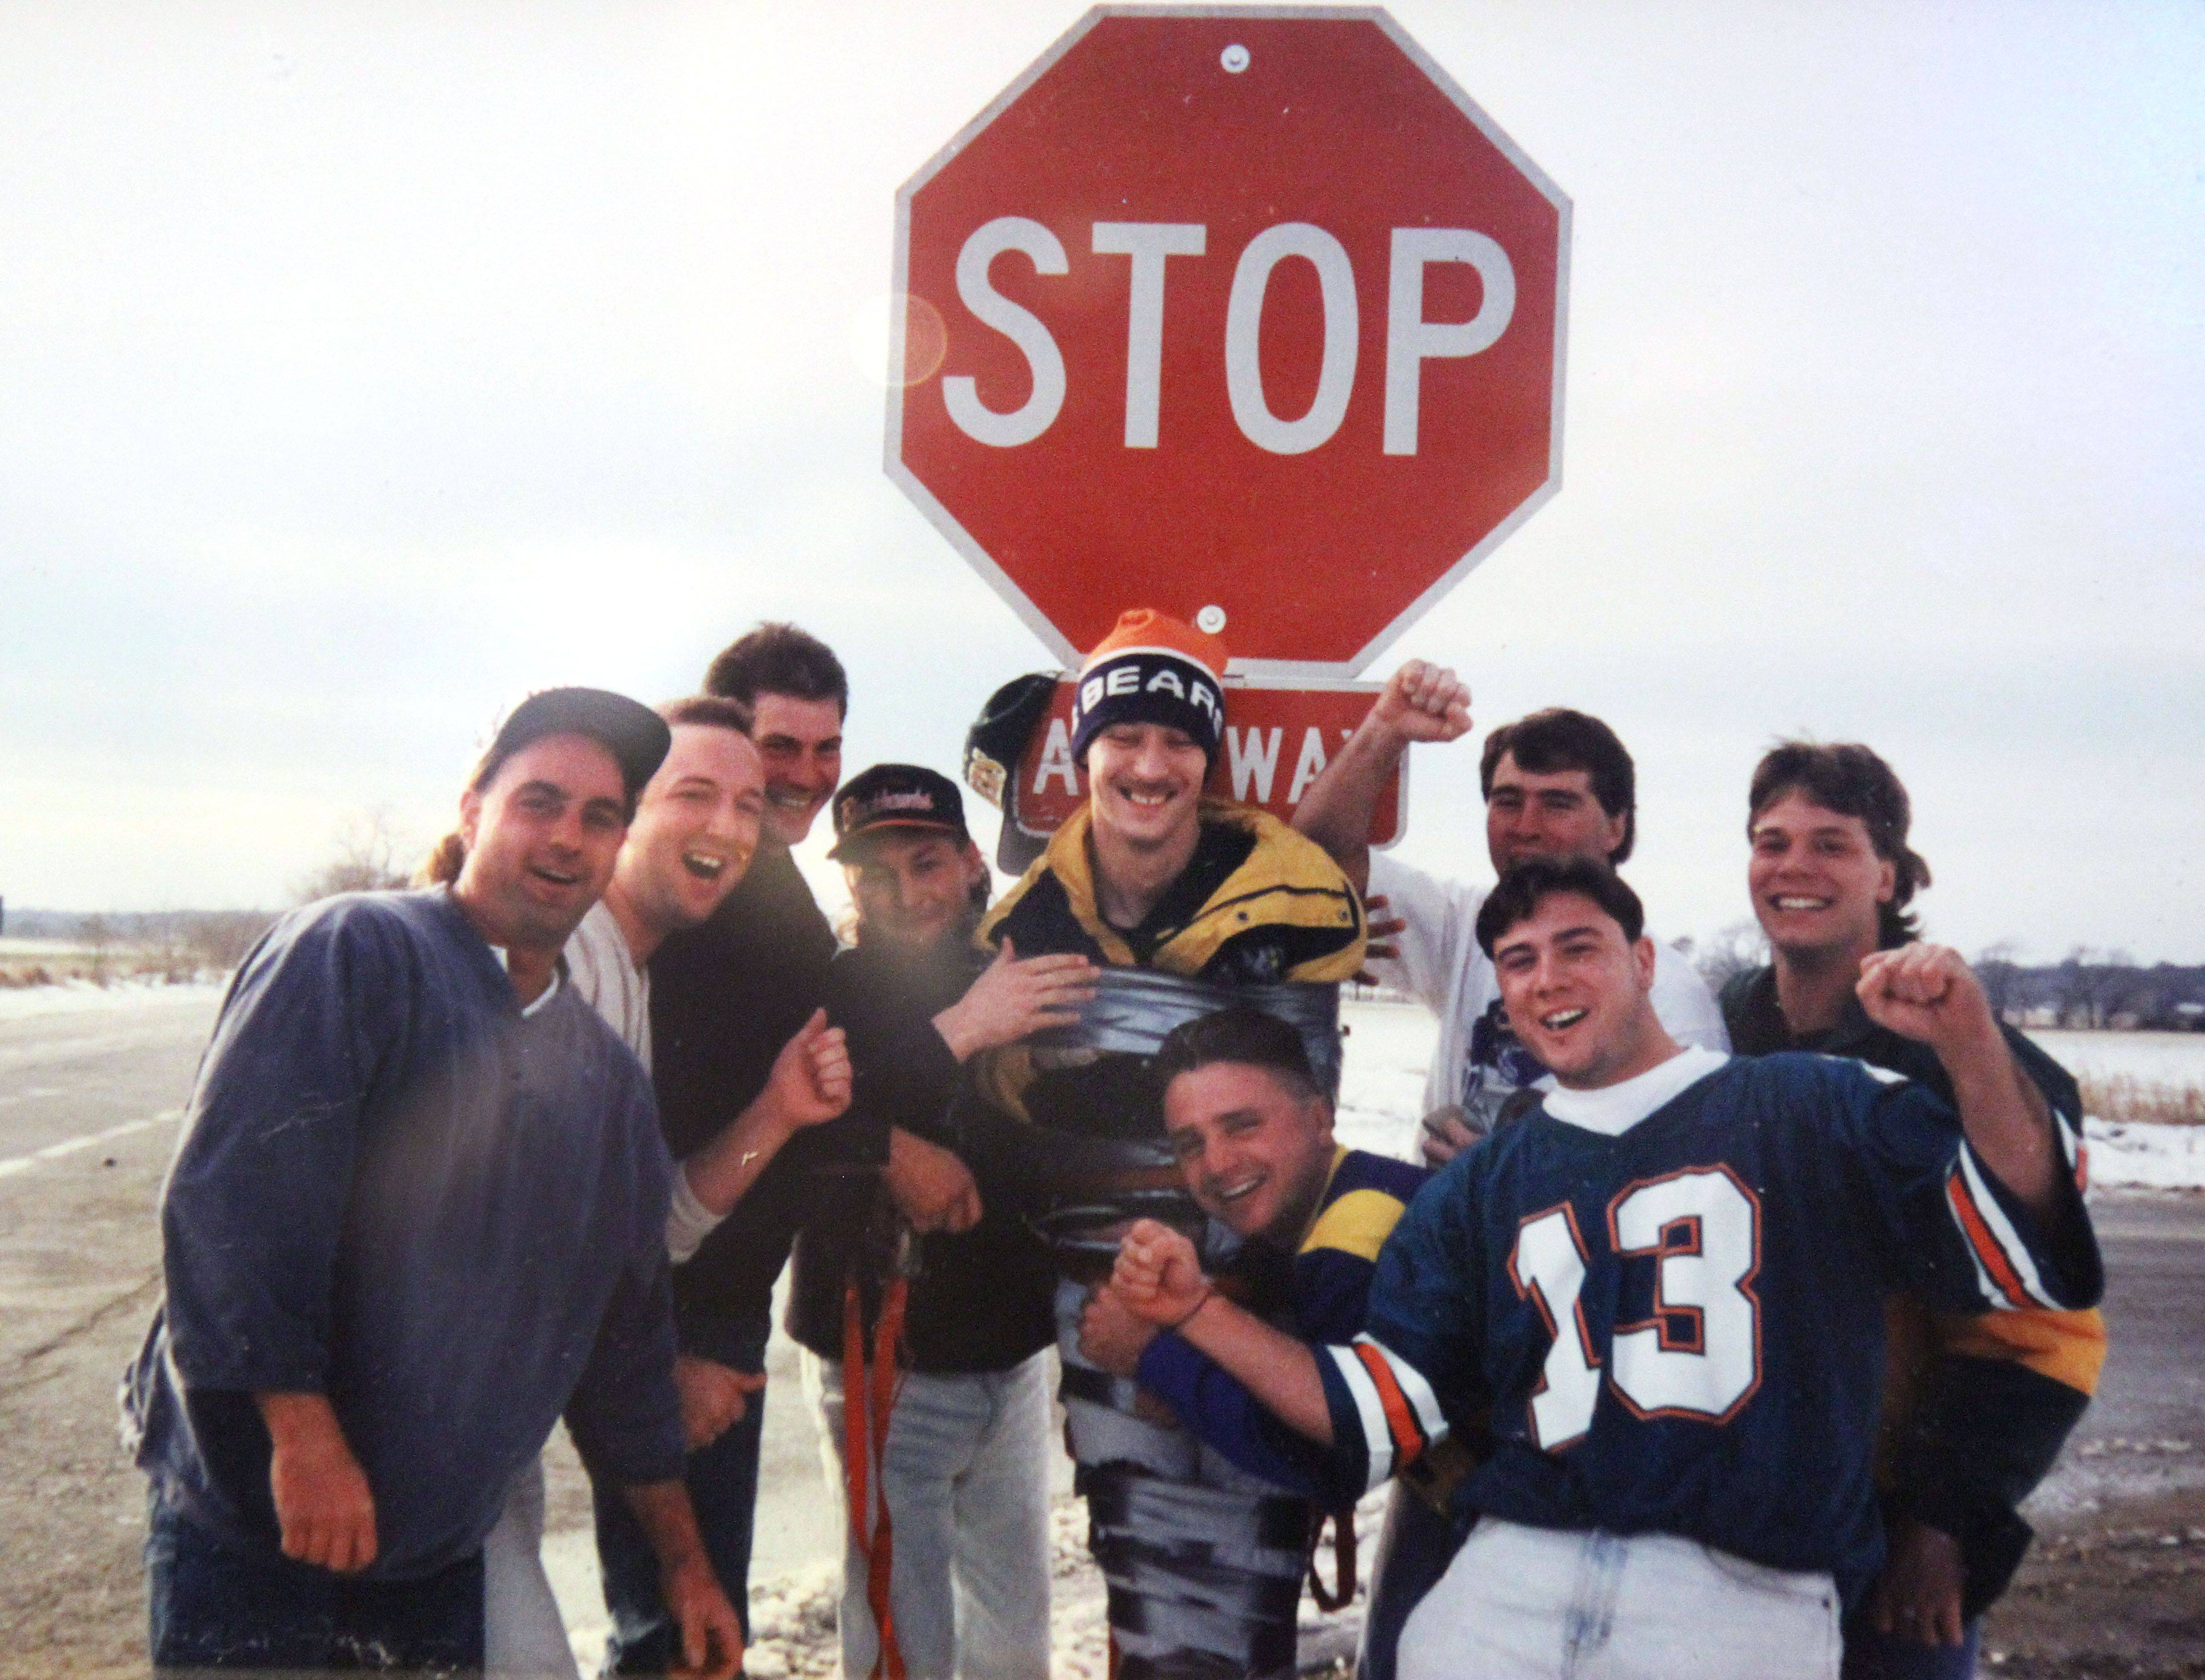 John Cochara of Spring Grove was duct-taped to a stop sign by unhappy Bear fans after the Packers beat the Bears 15 years ago.